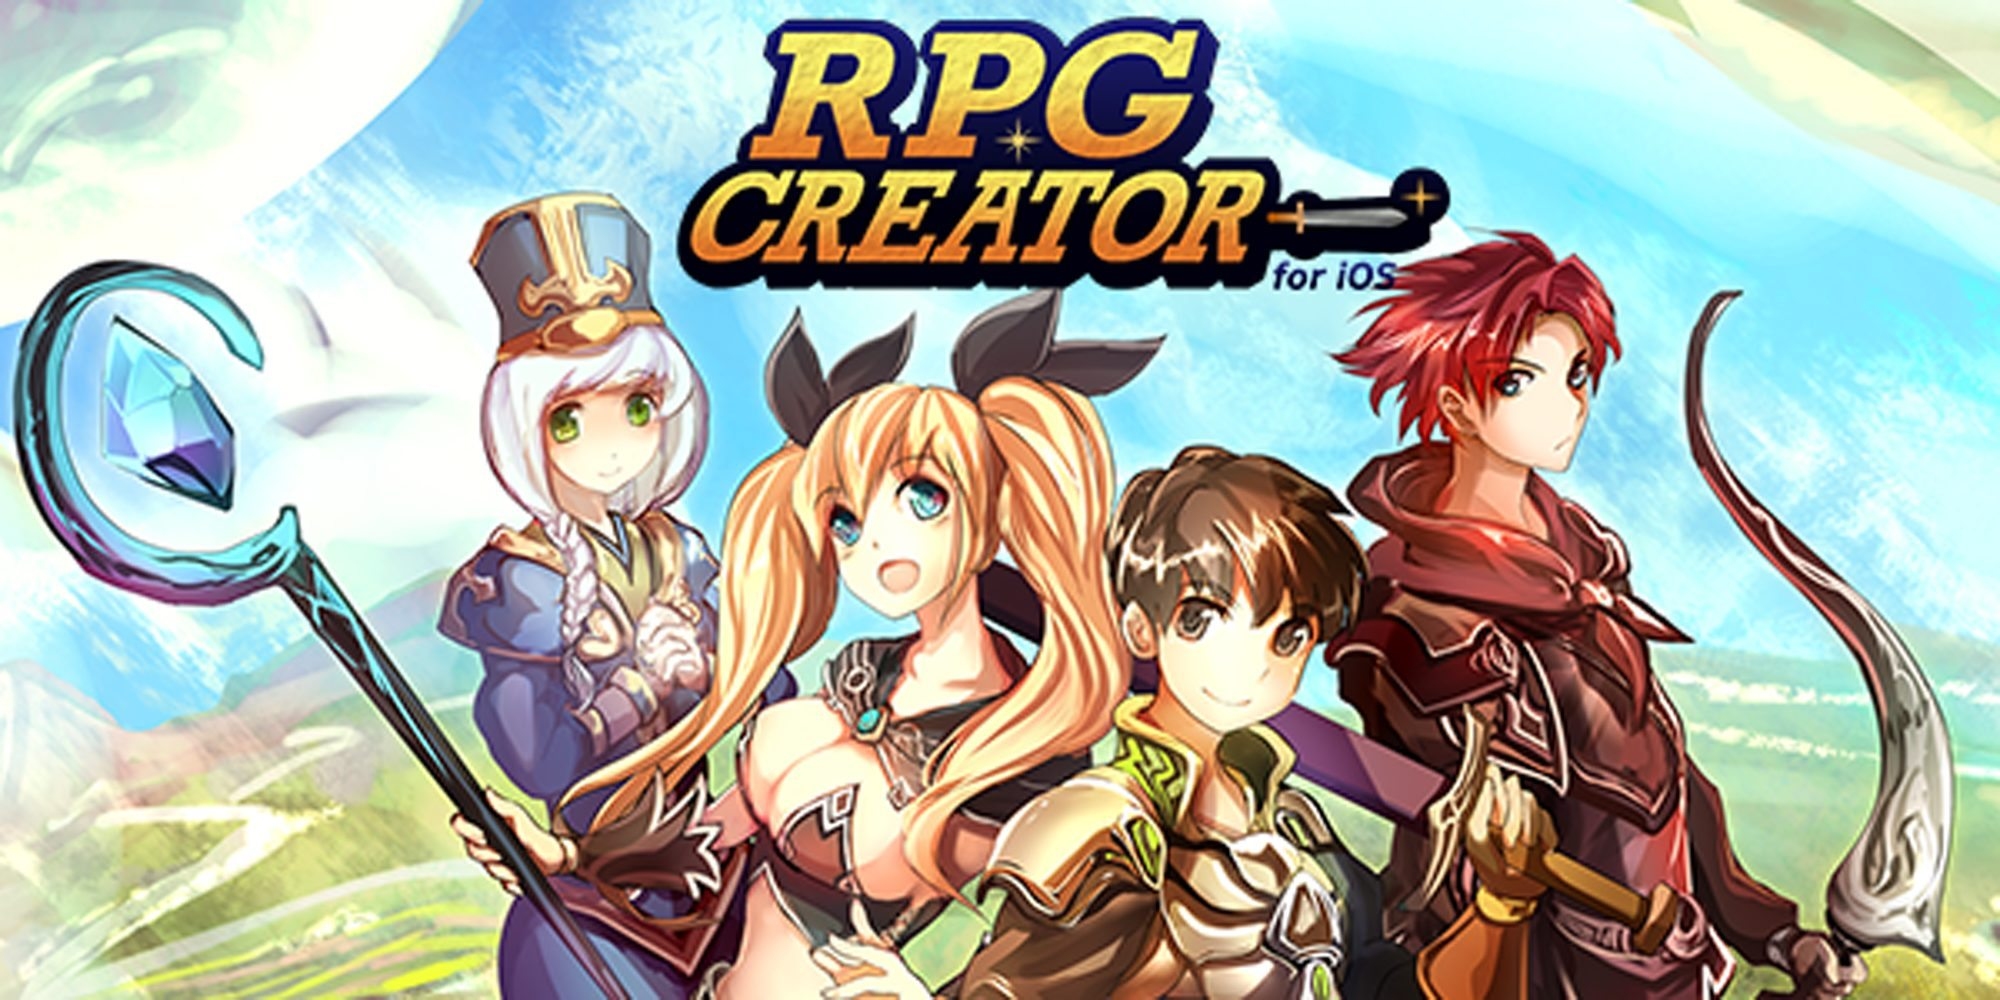 RPG Creator by Degica Now Available for iOS